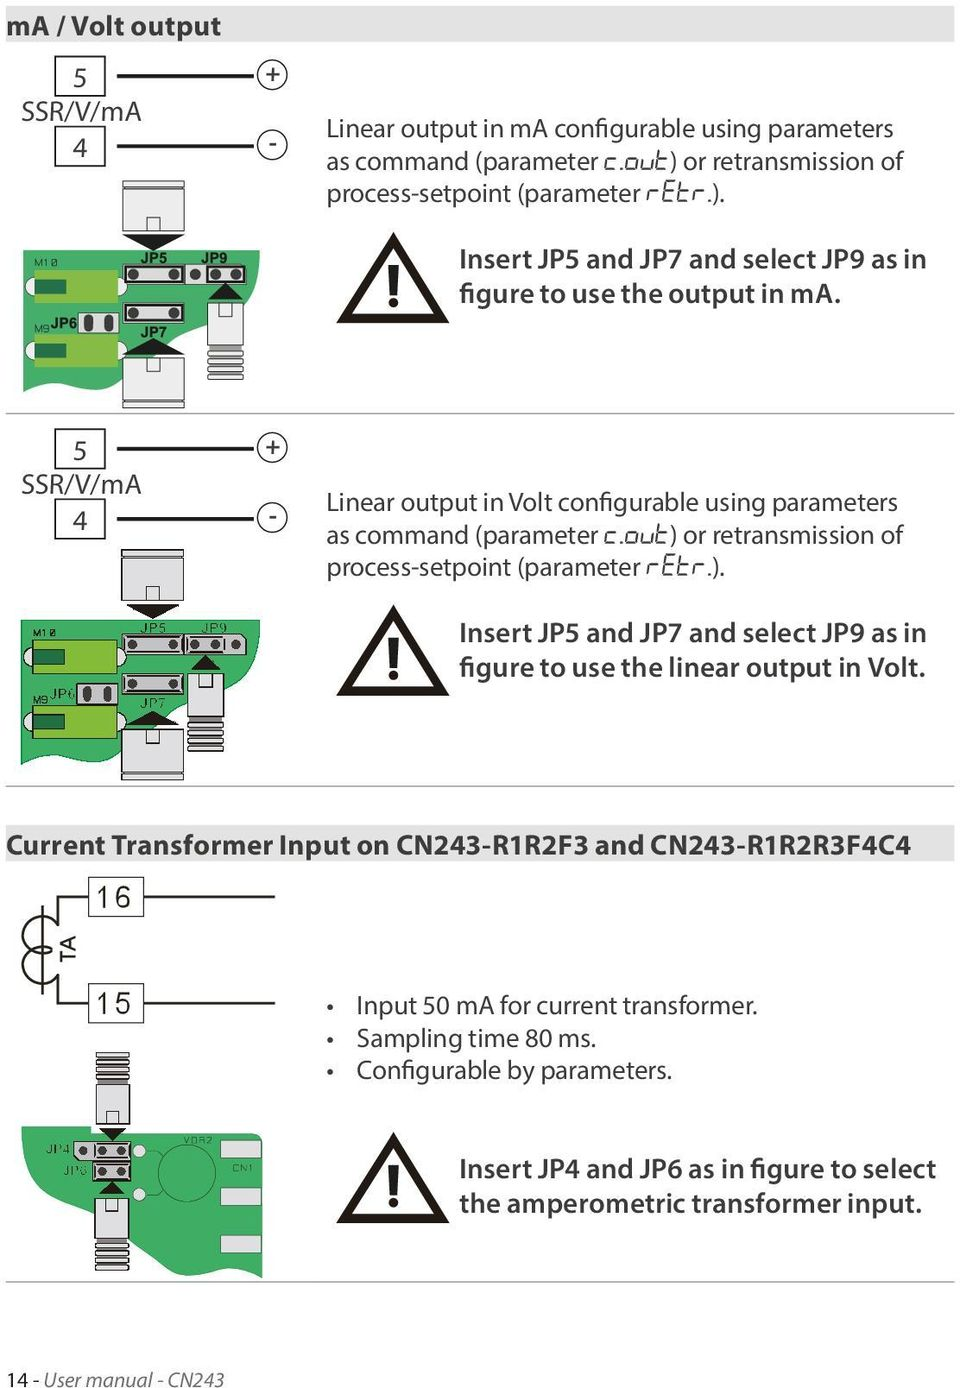 5 + SSR/V/mA 4 - Linear output in Volt configurable using parameters as command (parameter c.out) or retransmission of process-setpoint (parameter retr.). Insert JP5 and JP7 and select JP9 as in figure to use the linear output in Volt.